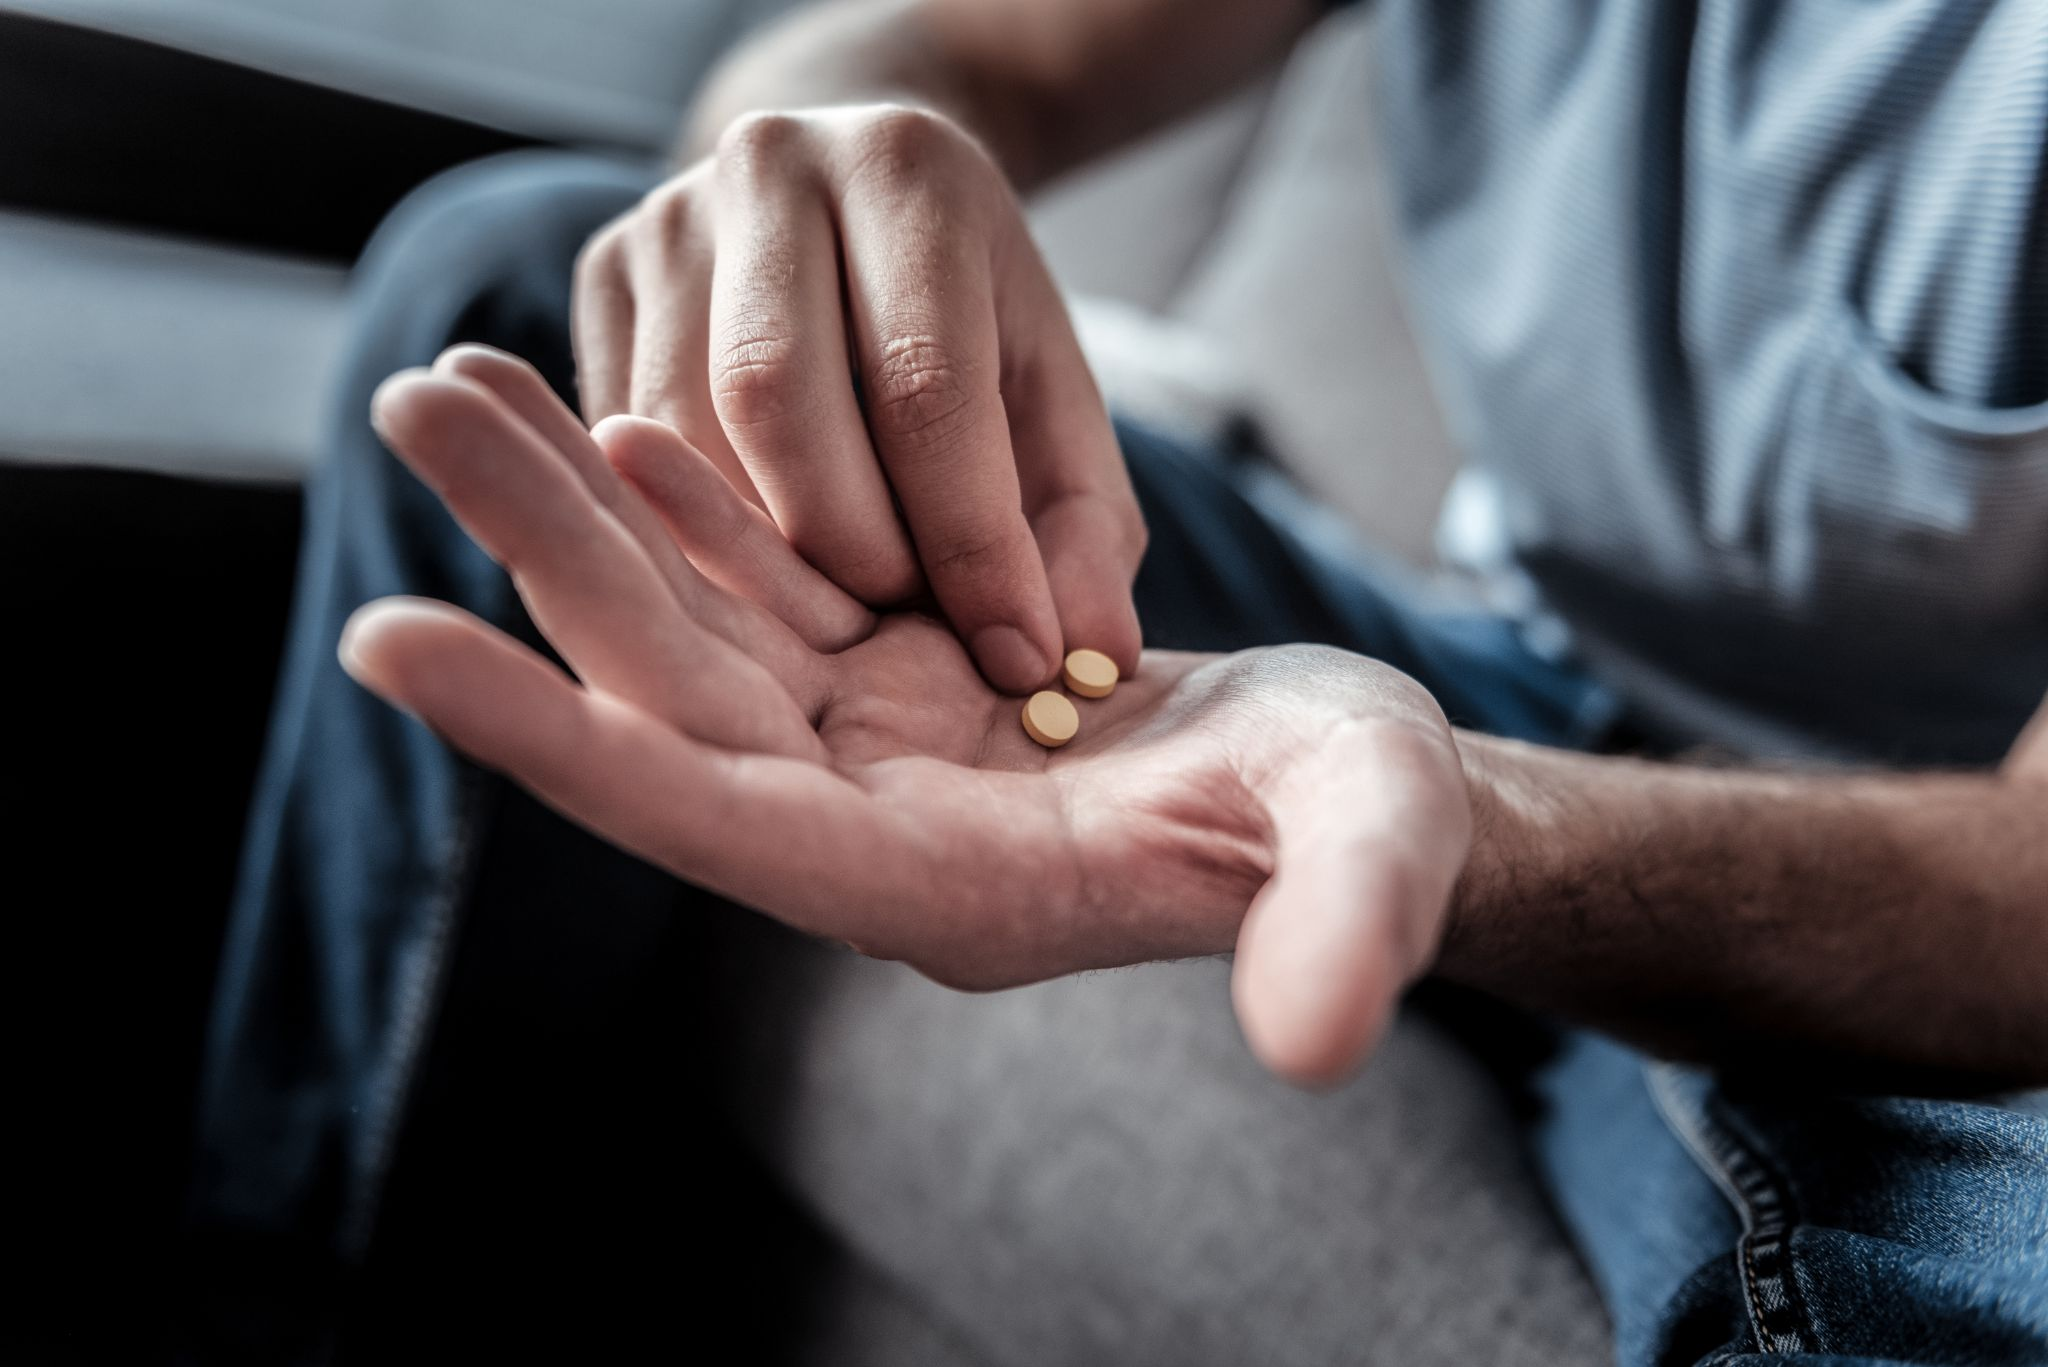 pills in hands of a man while suffering from depression